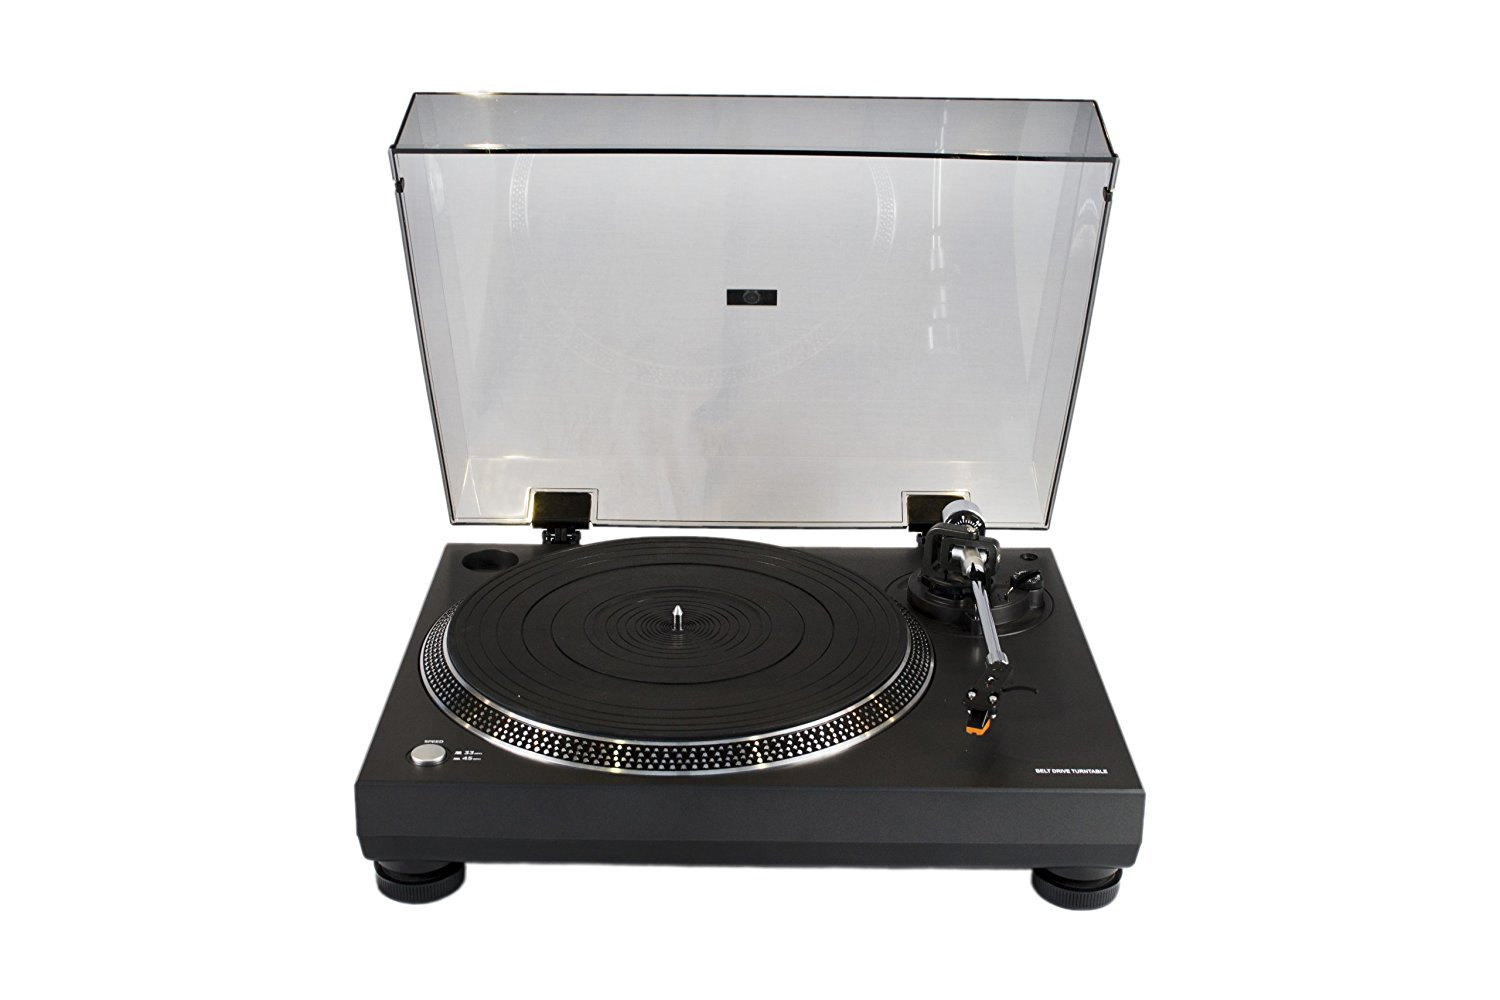 Connected Essentials Turntable for Vinyl Records Best turntable under $200